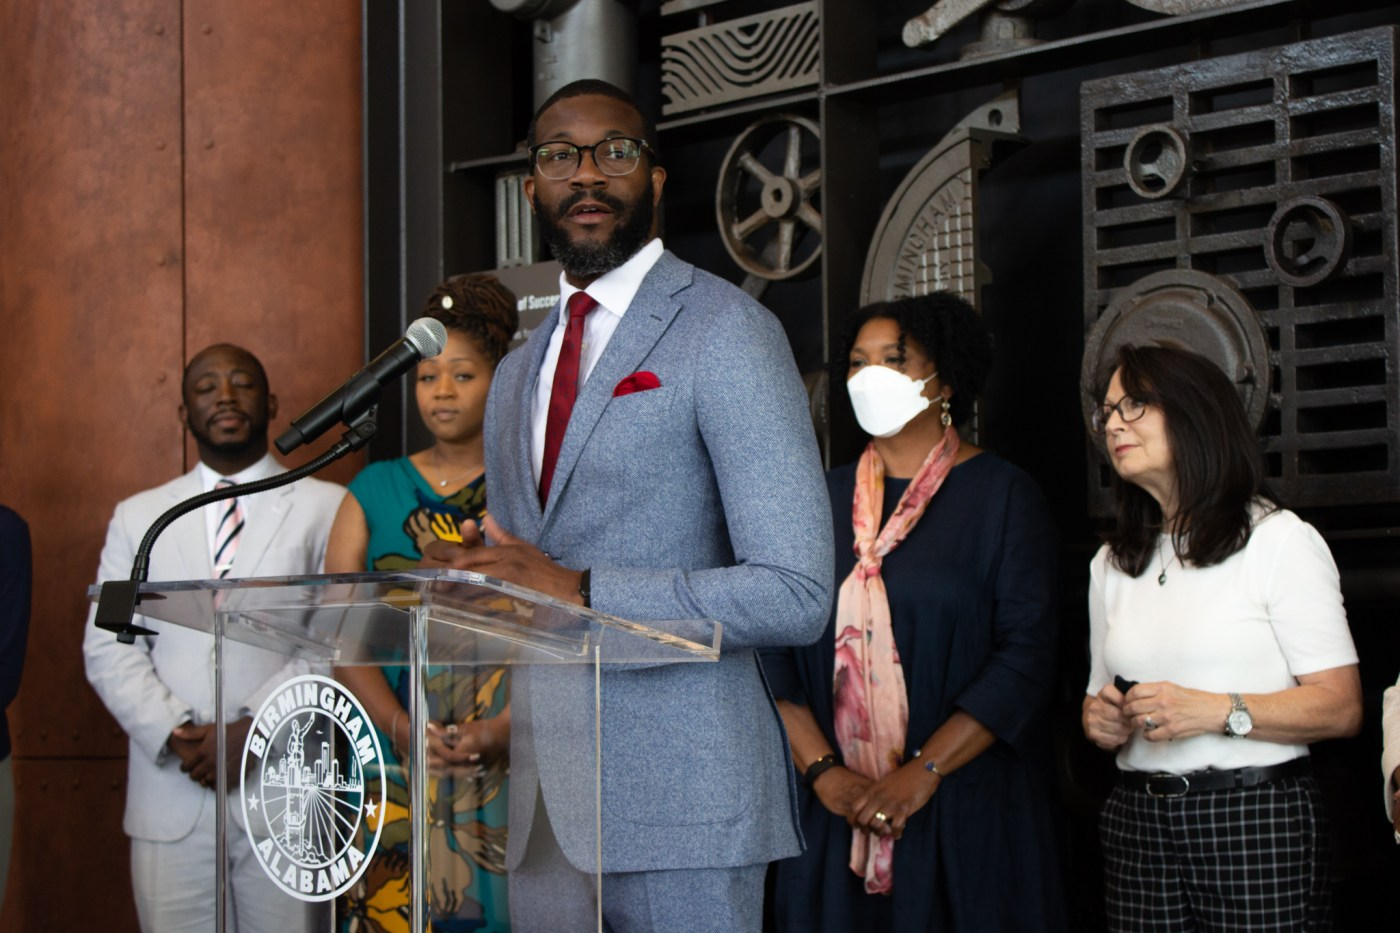 Mayor Woodfin emphasized that the celebrations this year will include all Birminghamians. Photo by Libby Foster for Bham Now.